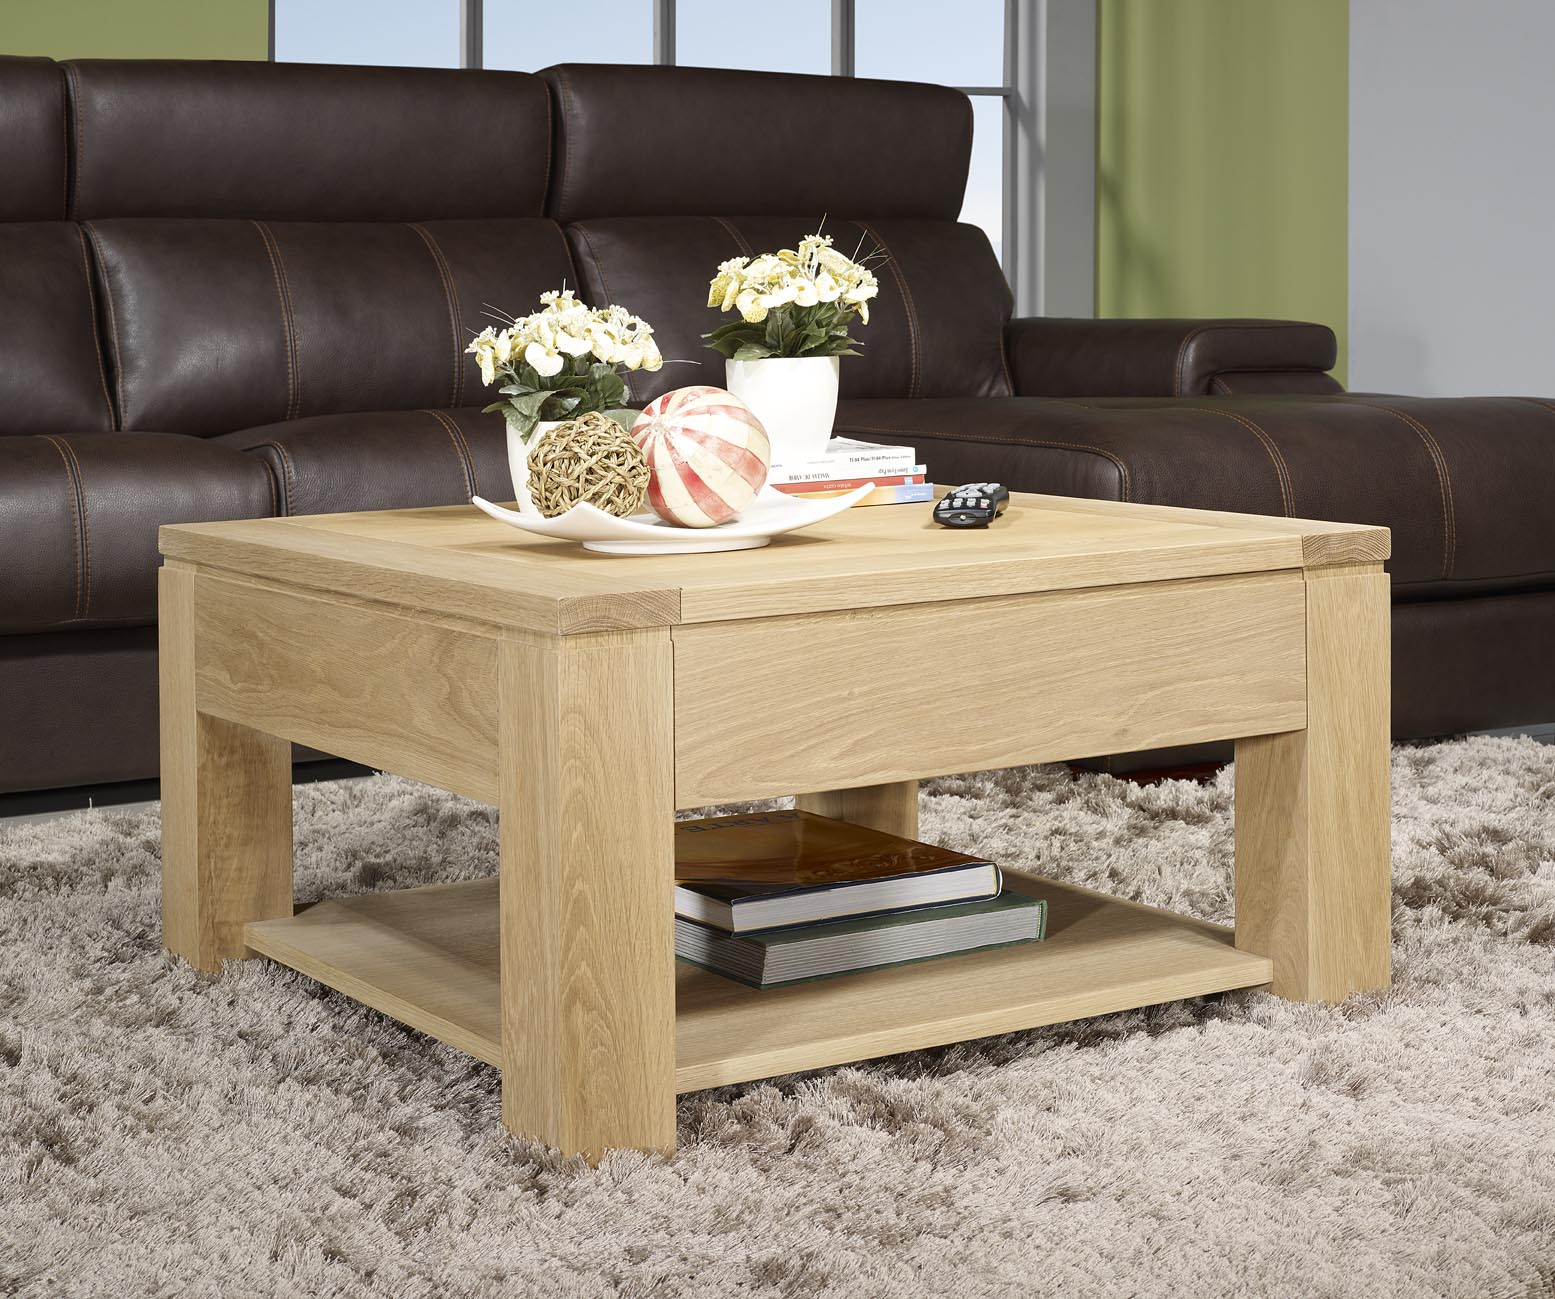 Table basse en ch ne massif ligne contemporaine finition ch ne bross meuble en ch ne - Table basse en chene massif ...